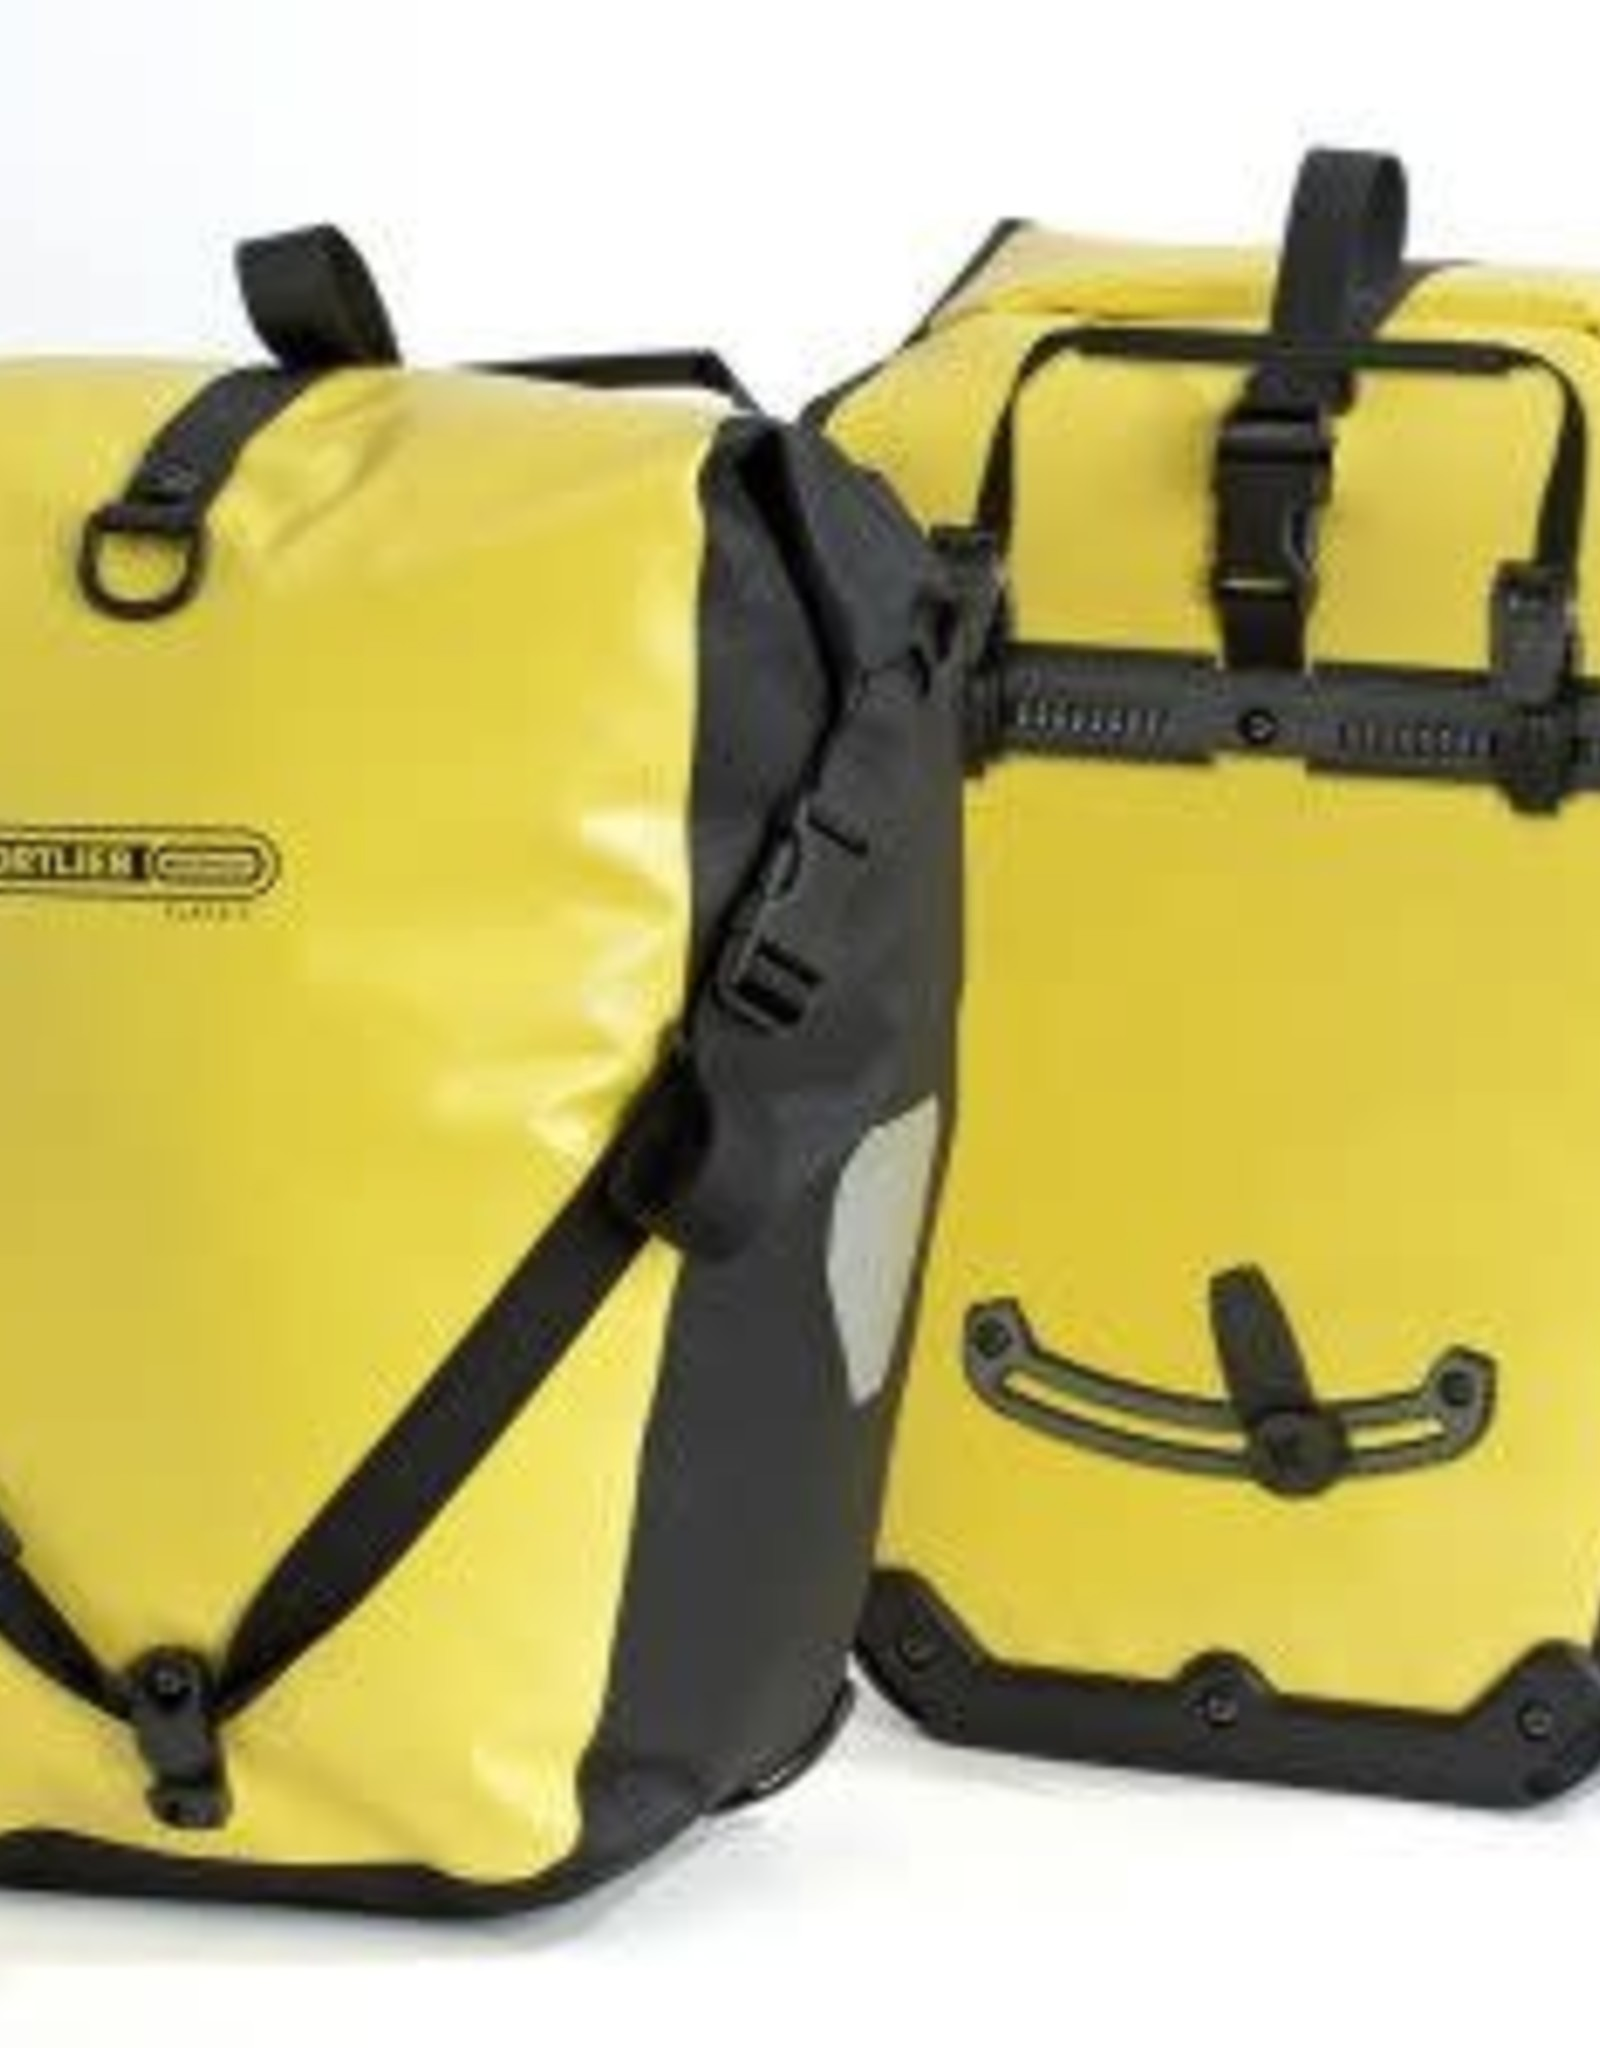 Ortlieb ORTLIEB Pannier Bags BACK ROLLER CLASSIC (Pair)